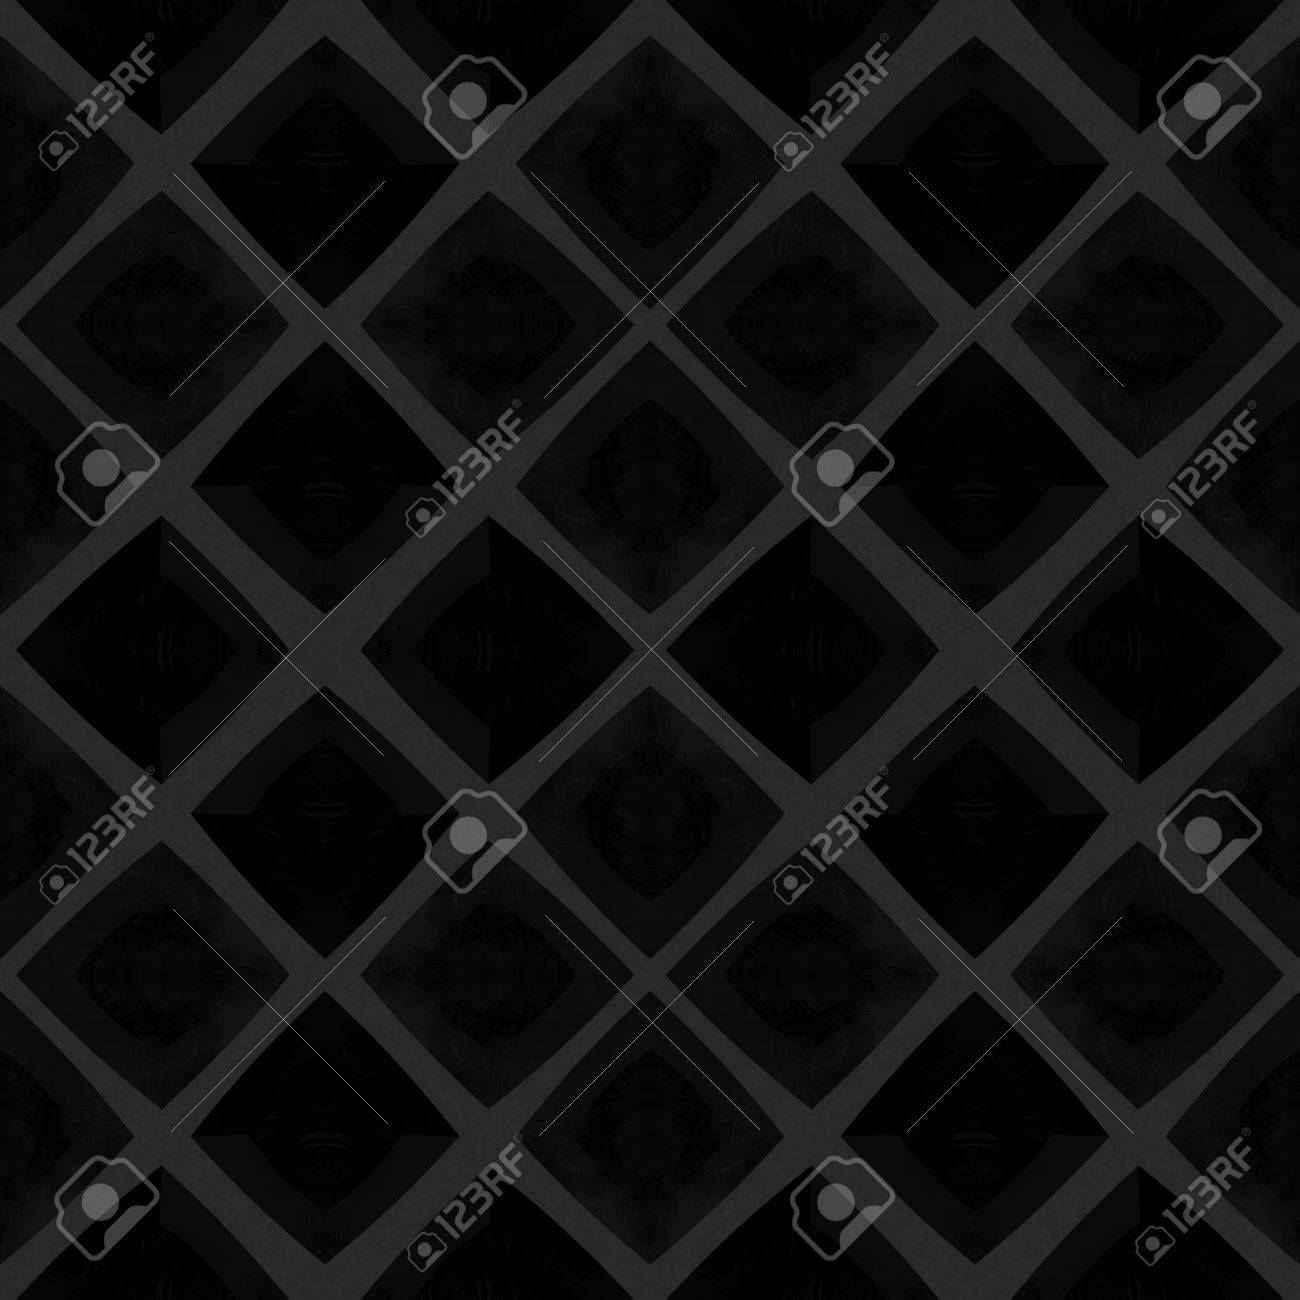 Abstract Checkered Black Mosaic Tile Pattern In Spanish Ceramics Style  Banco De Imagens   52059358